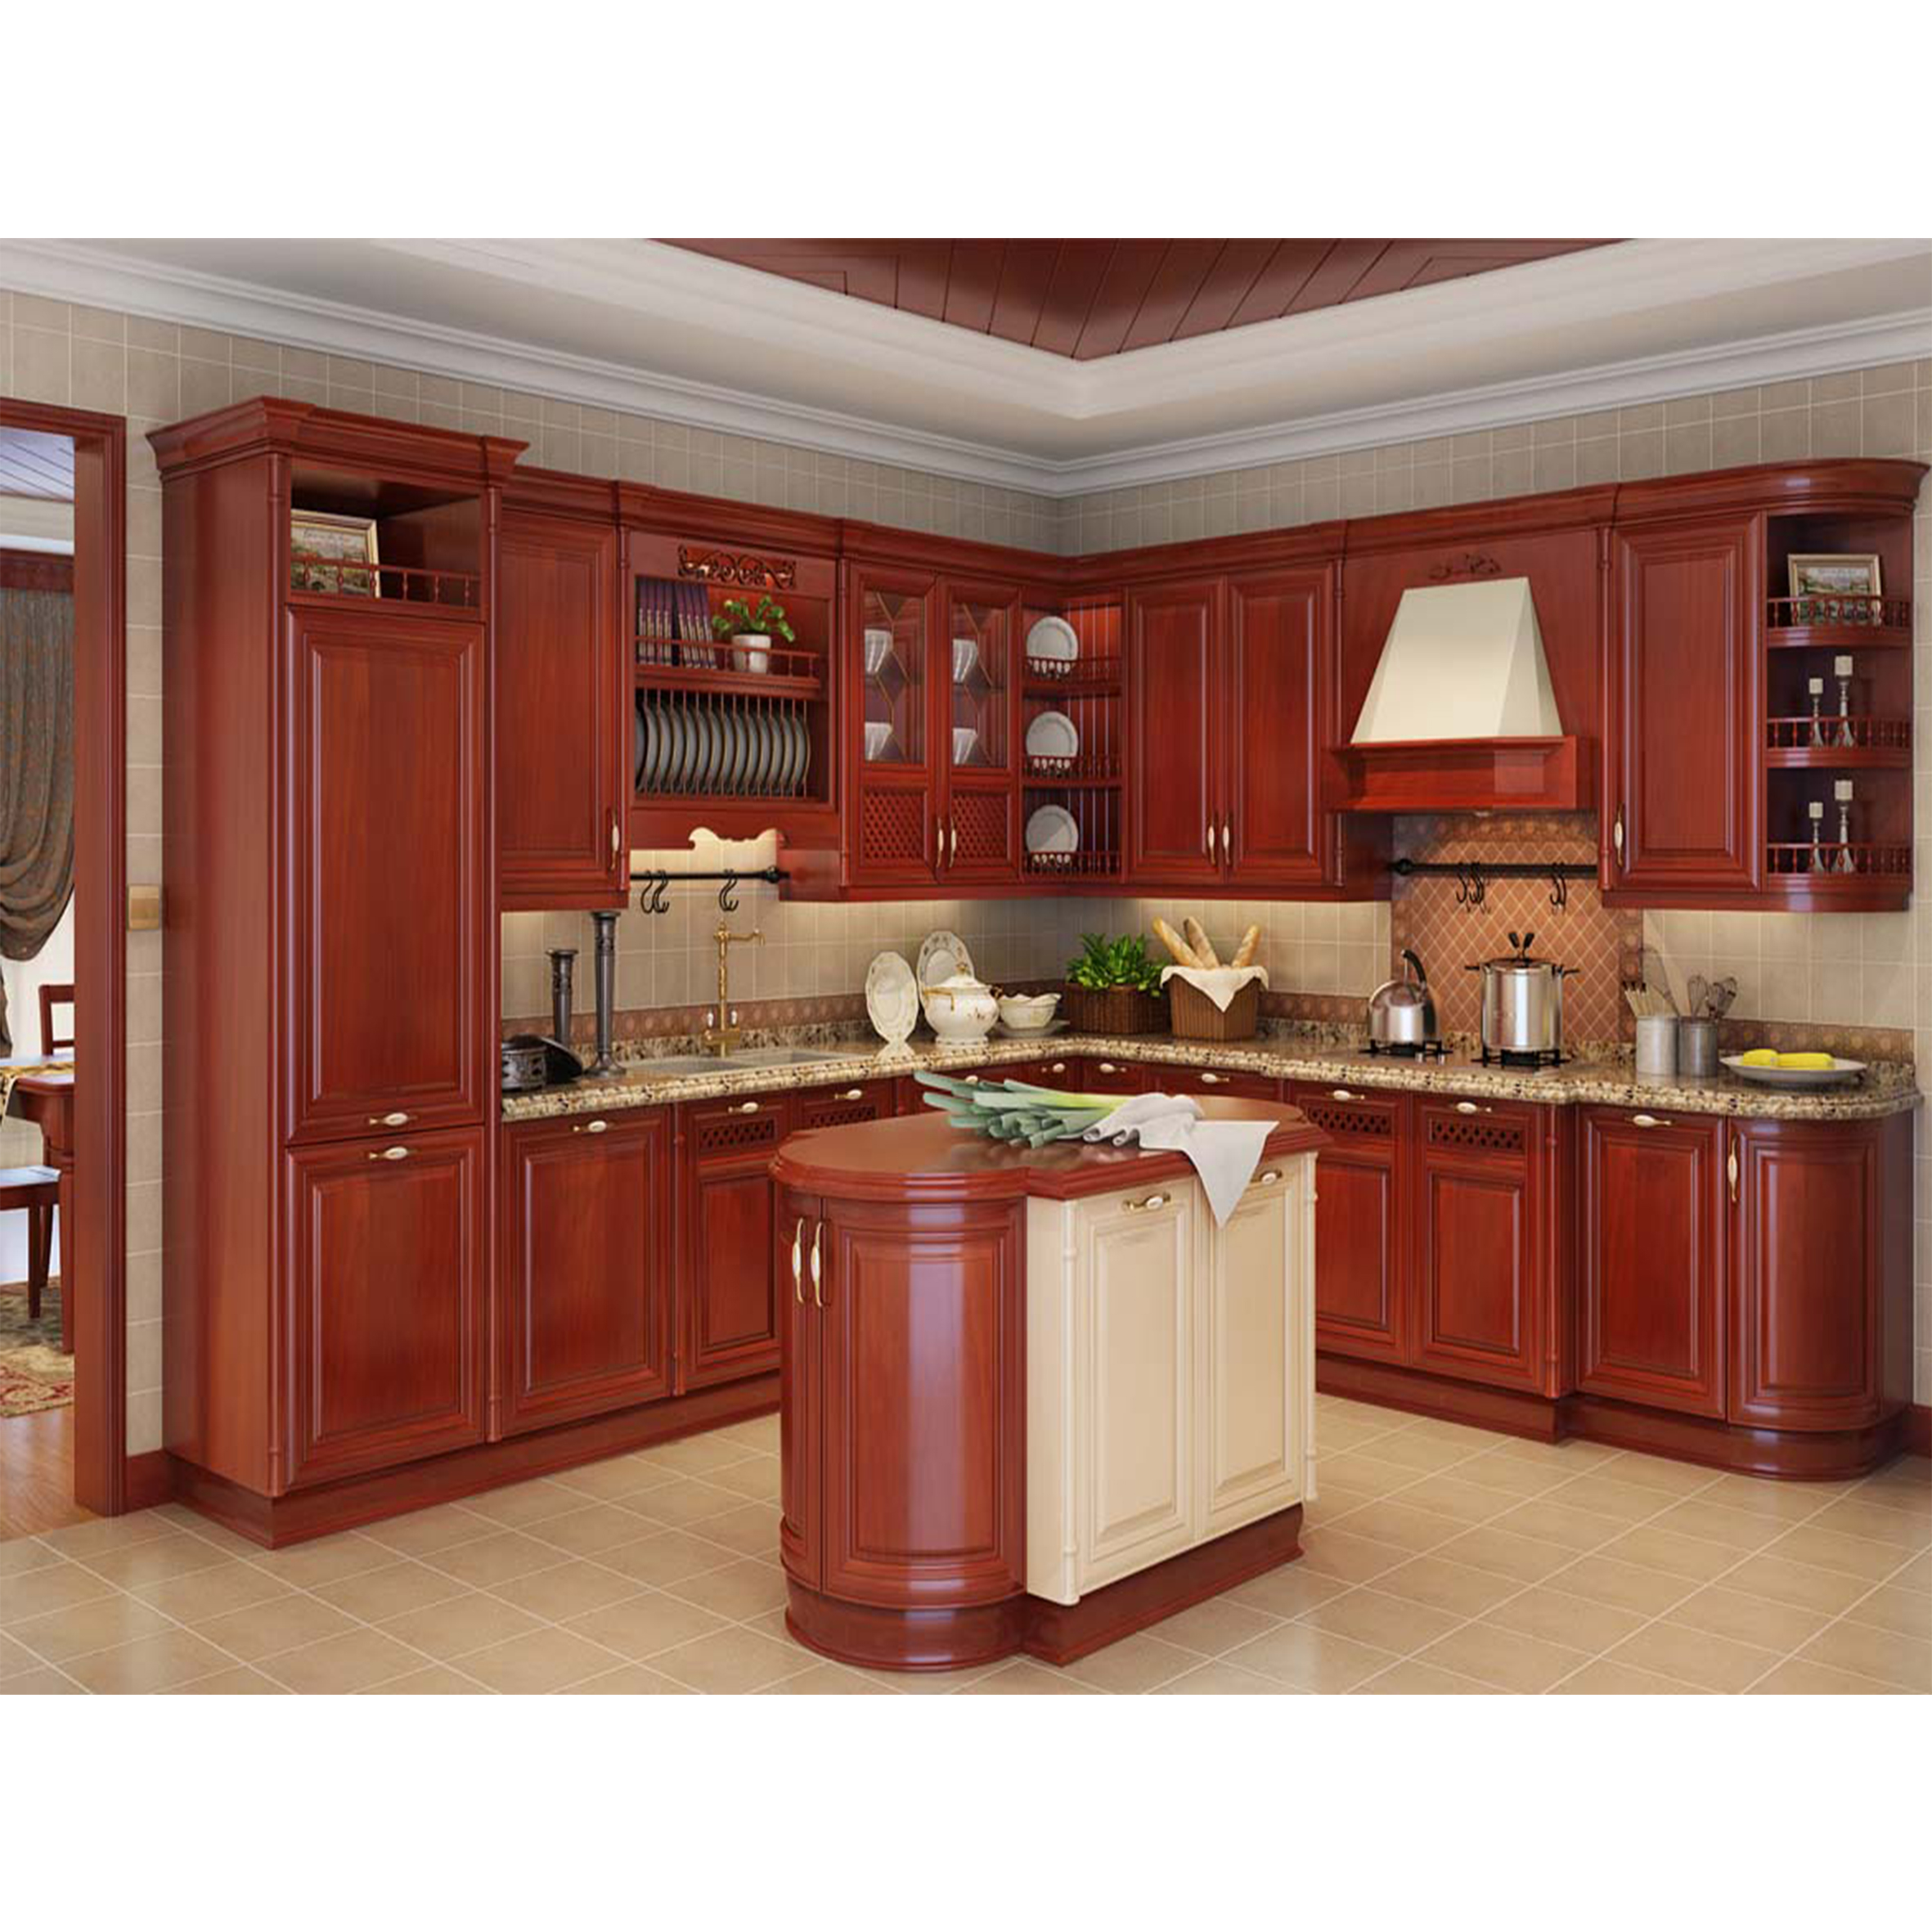 Foshan Modular Solid Wood Kitchen Cabinets Wooden Furniture Double ...